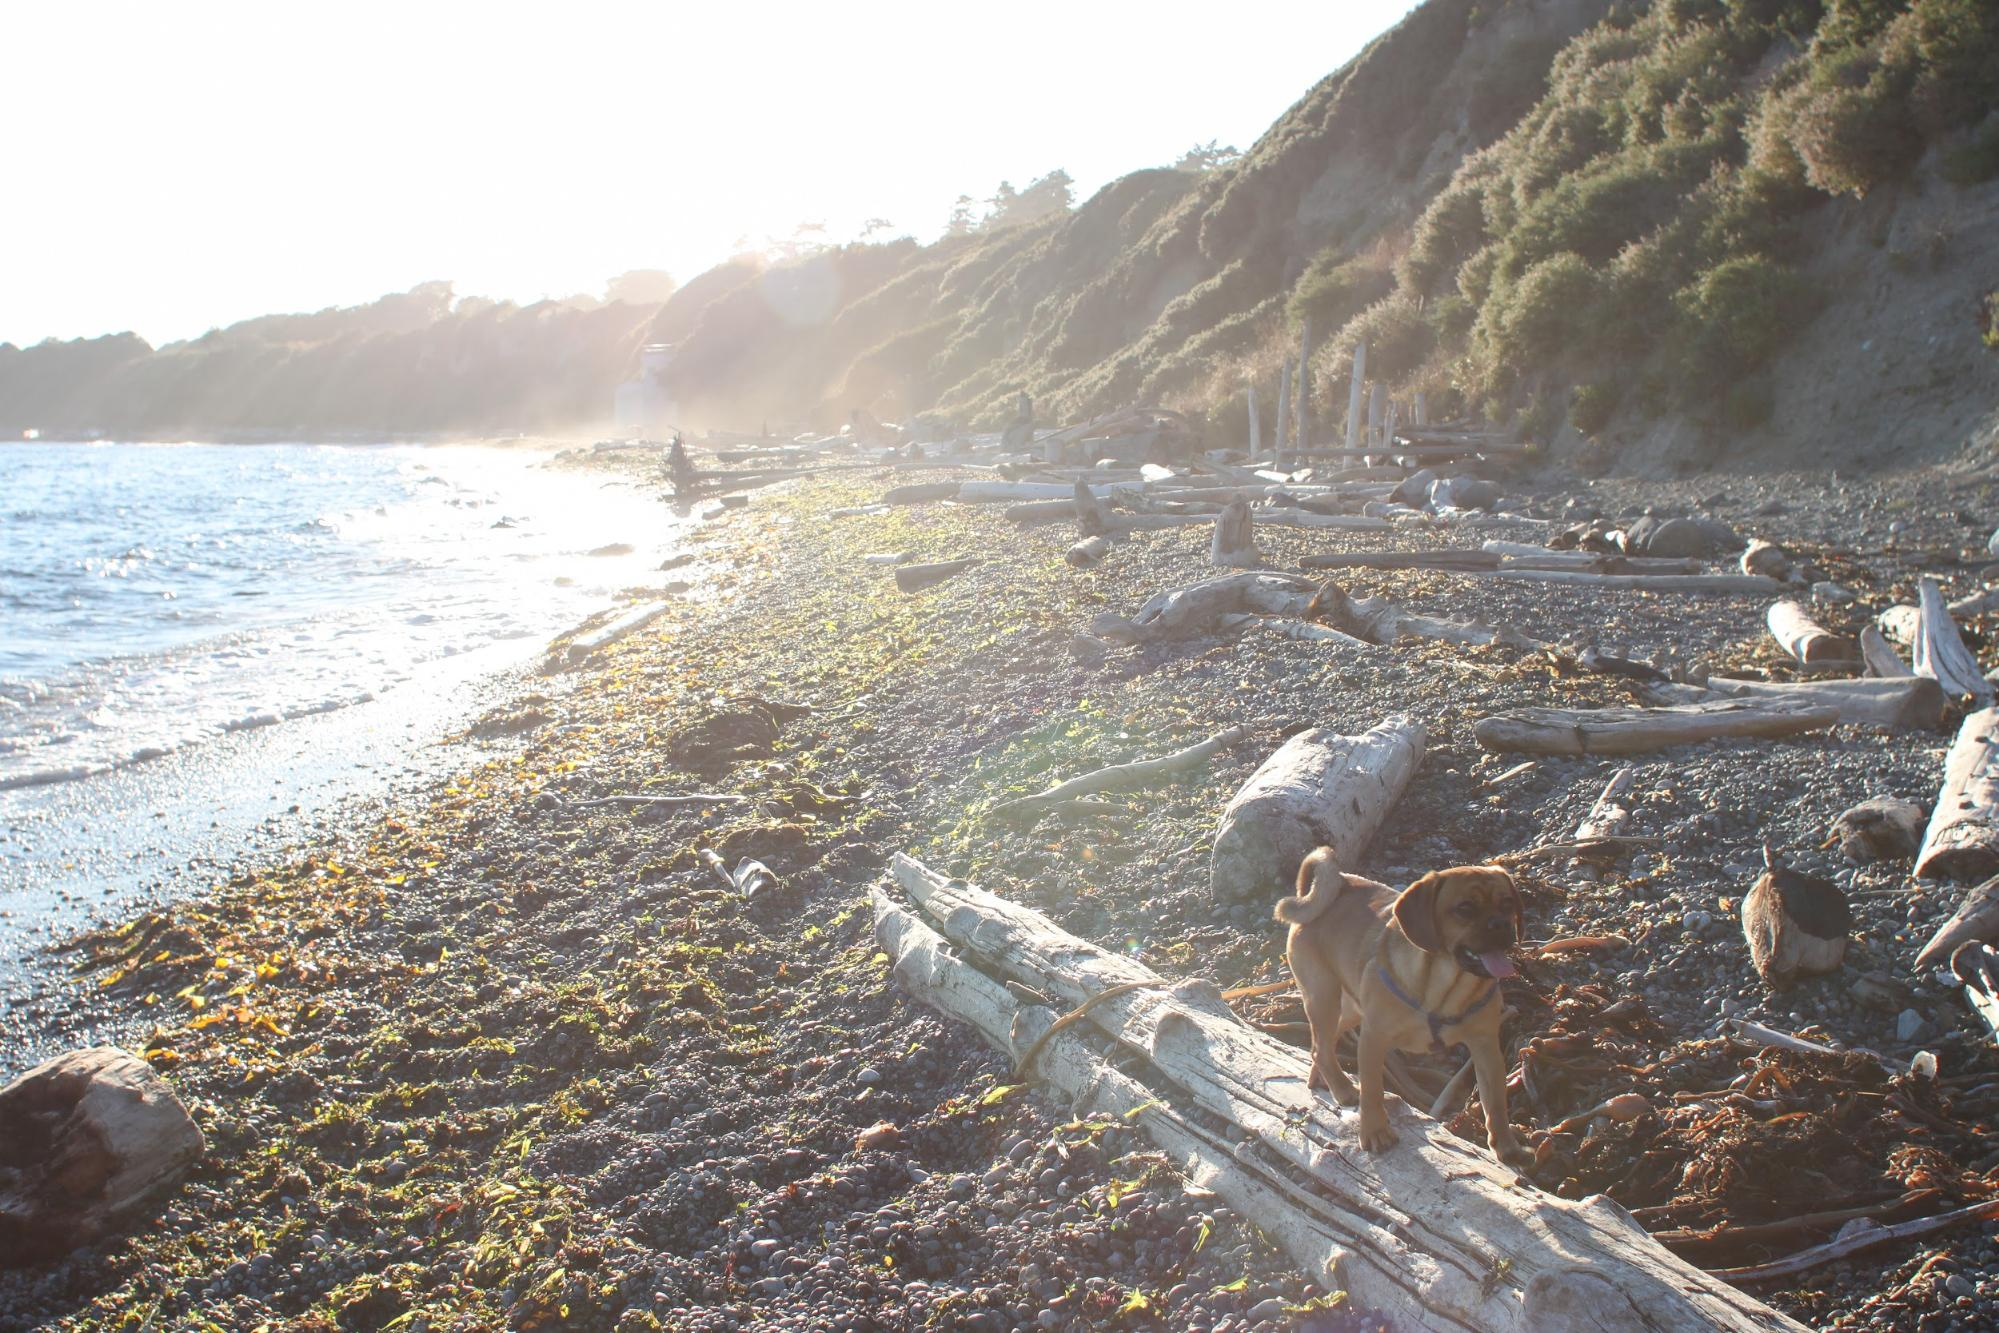 A happy dog walks across a piece of driftwood on a sandy beach.